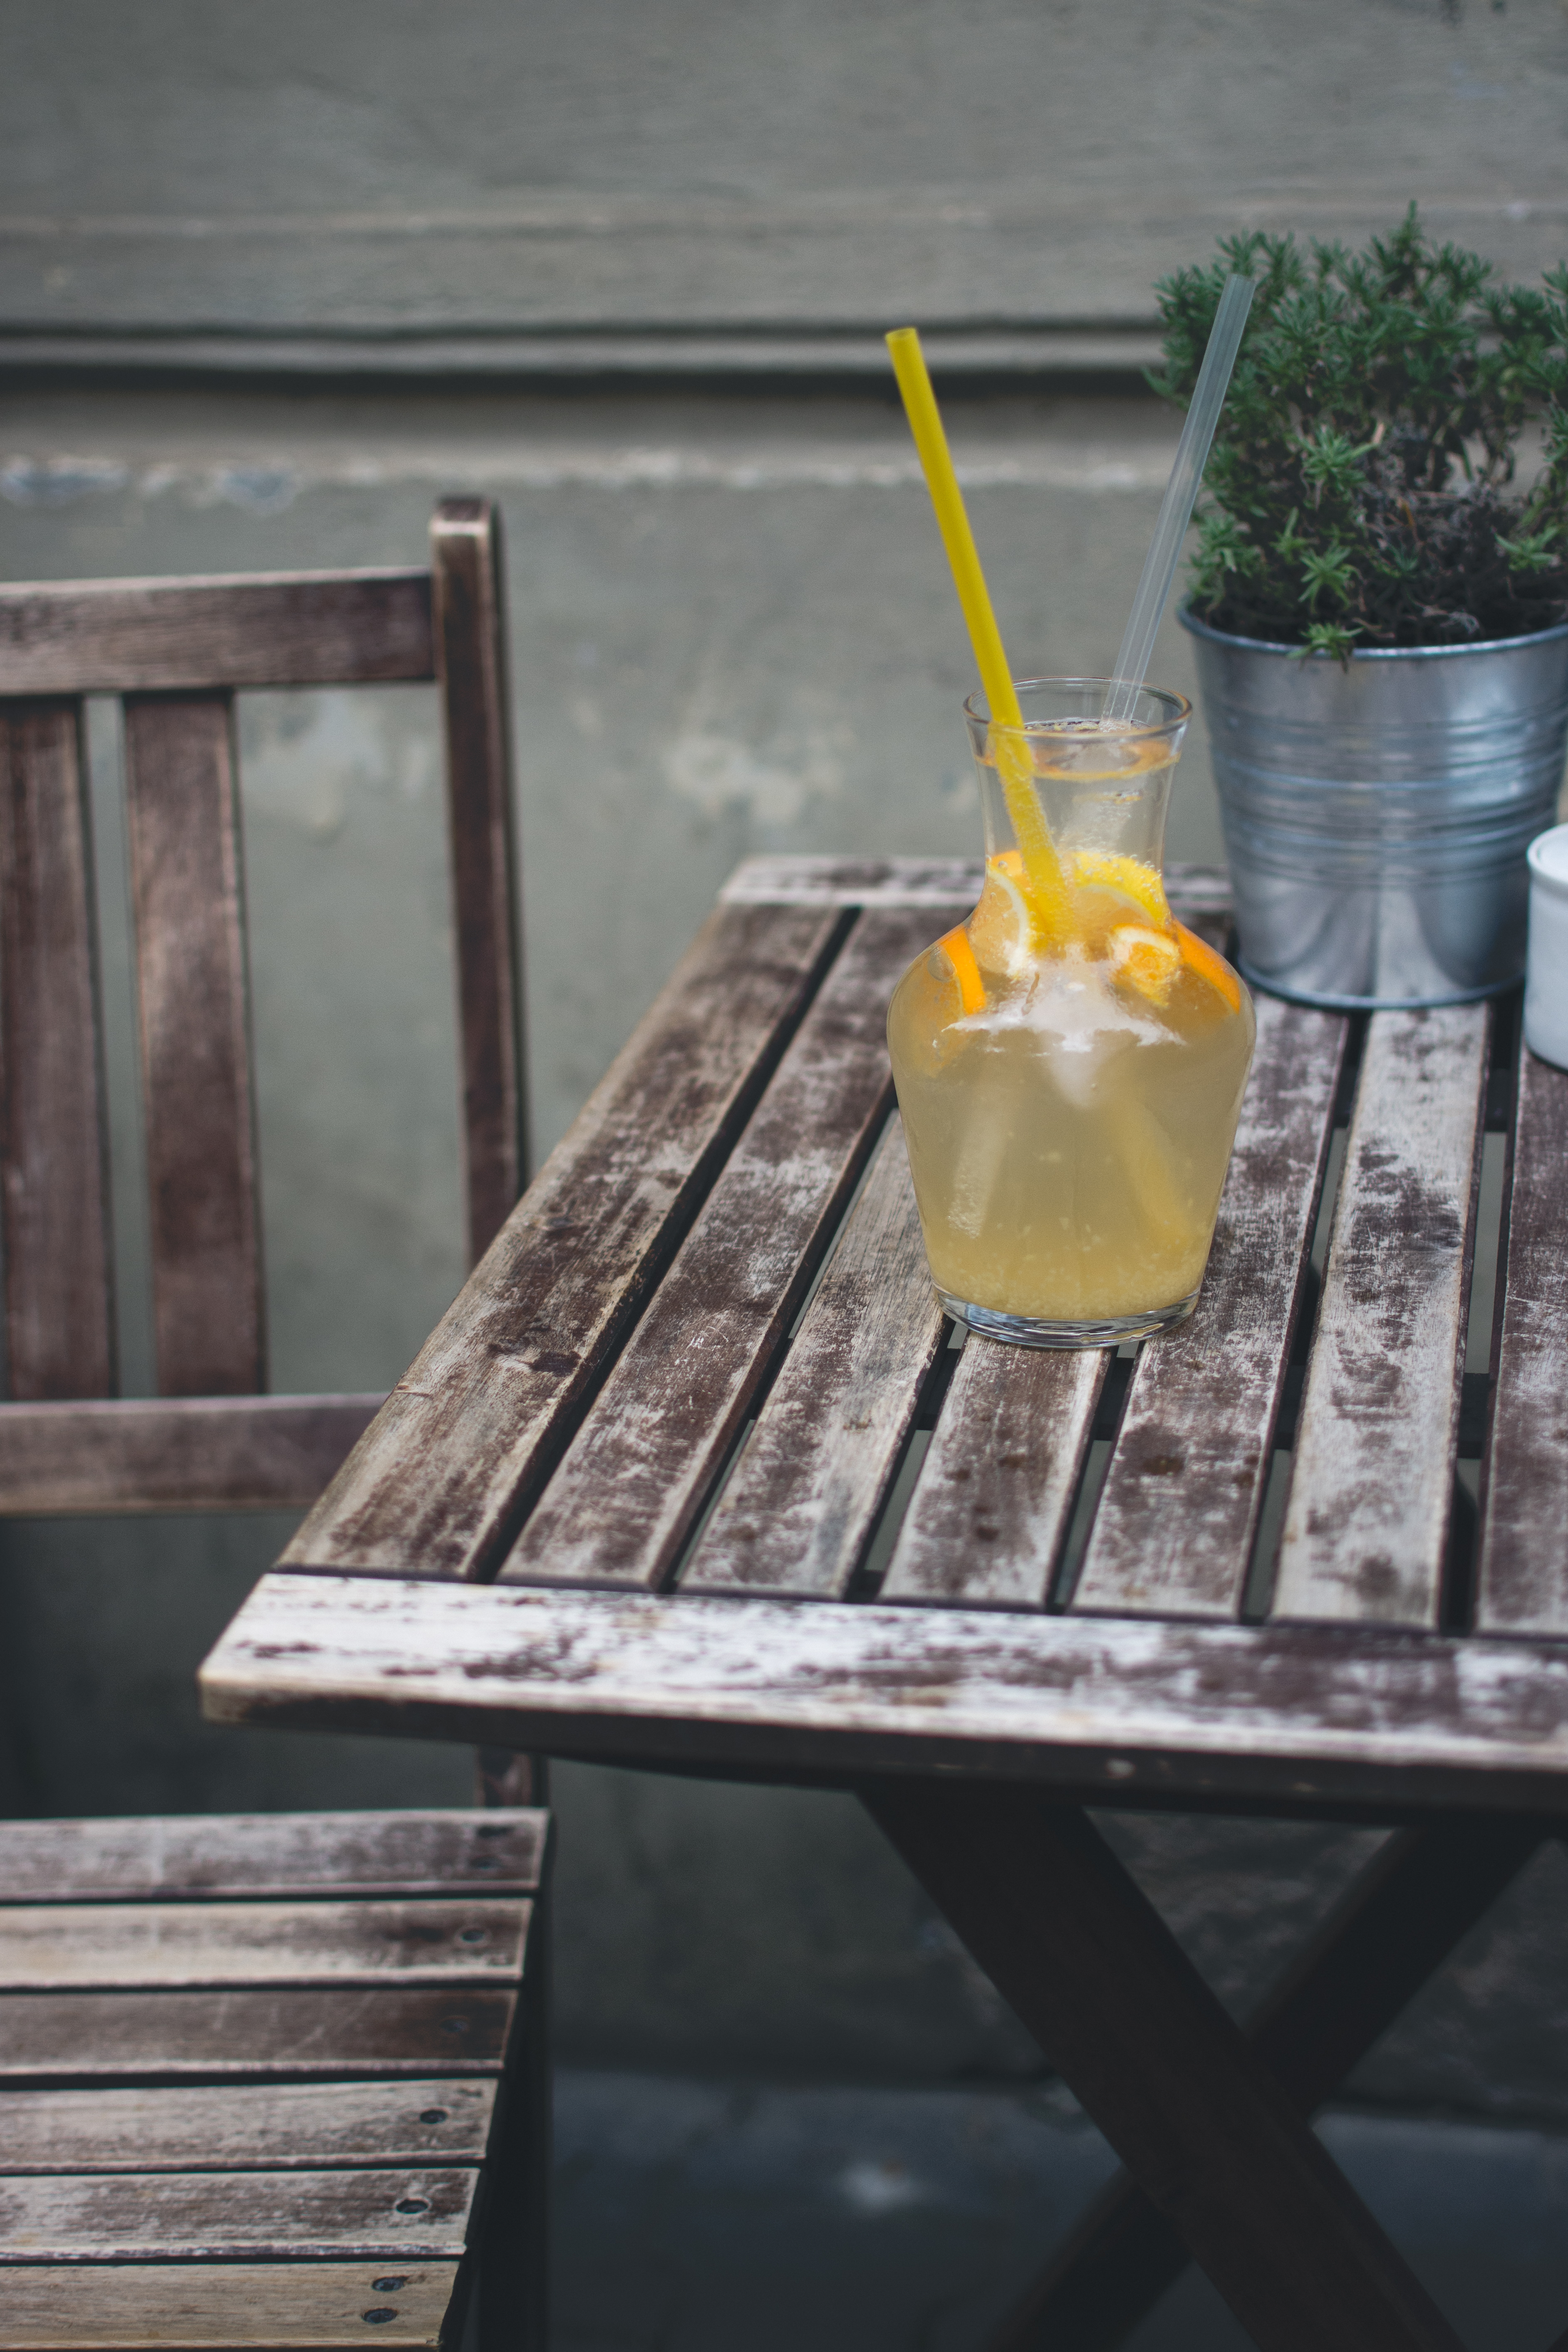 Orange lemonade at a wooden desk outside